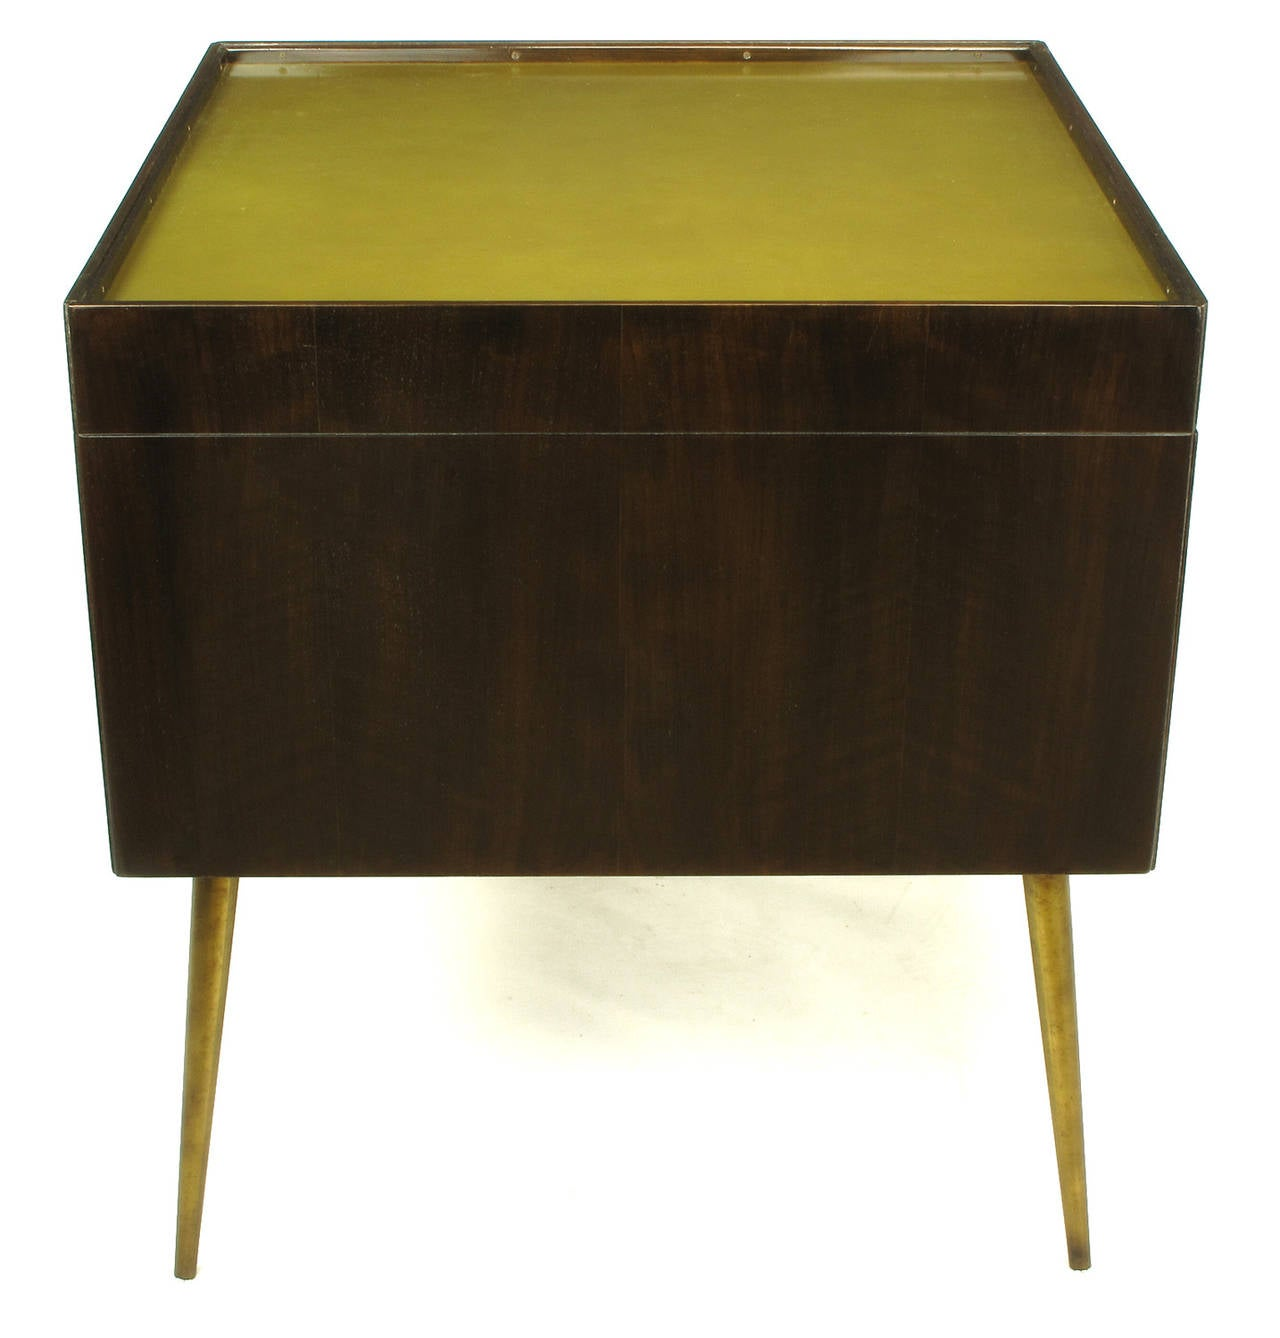 Mid-20th Century Bert England Orientation Group Walnut and Brass Bar Cabinet for John Widdicomb For Sale